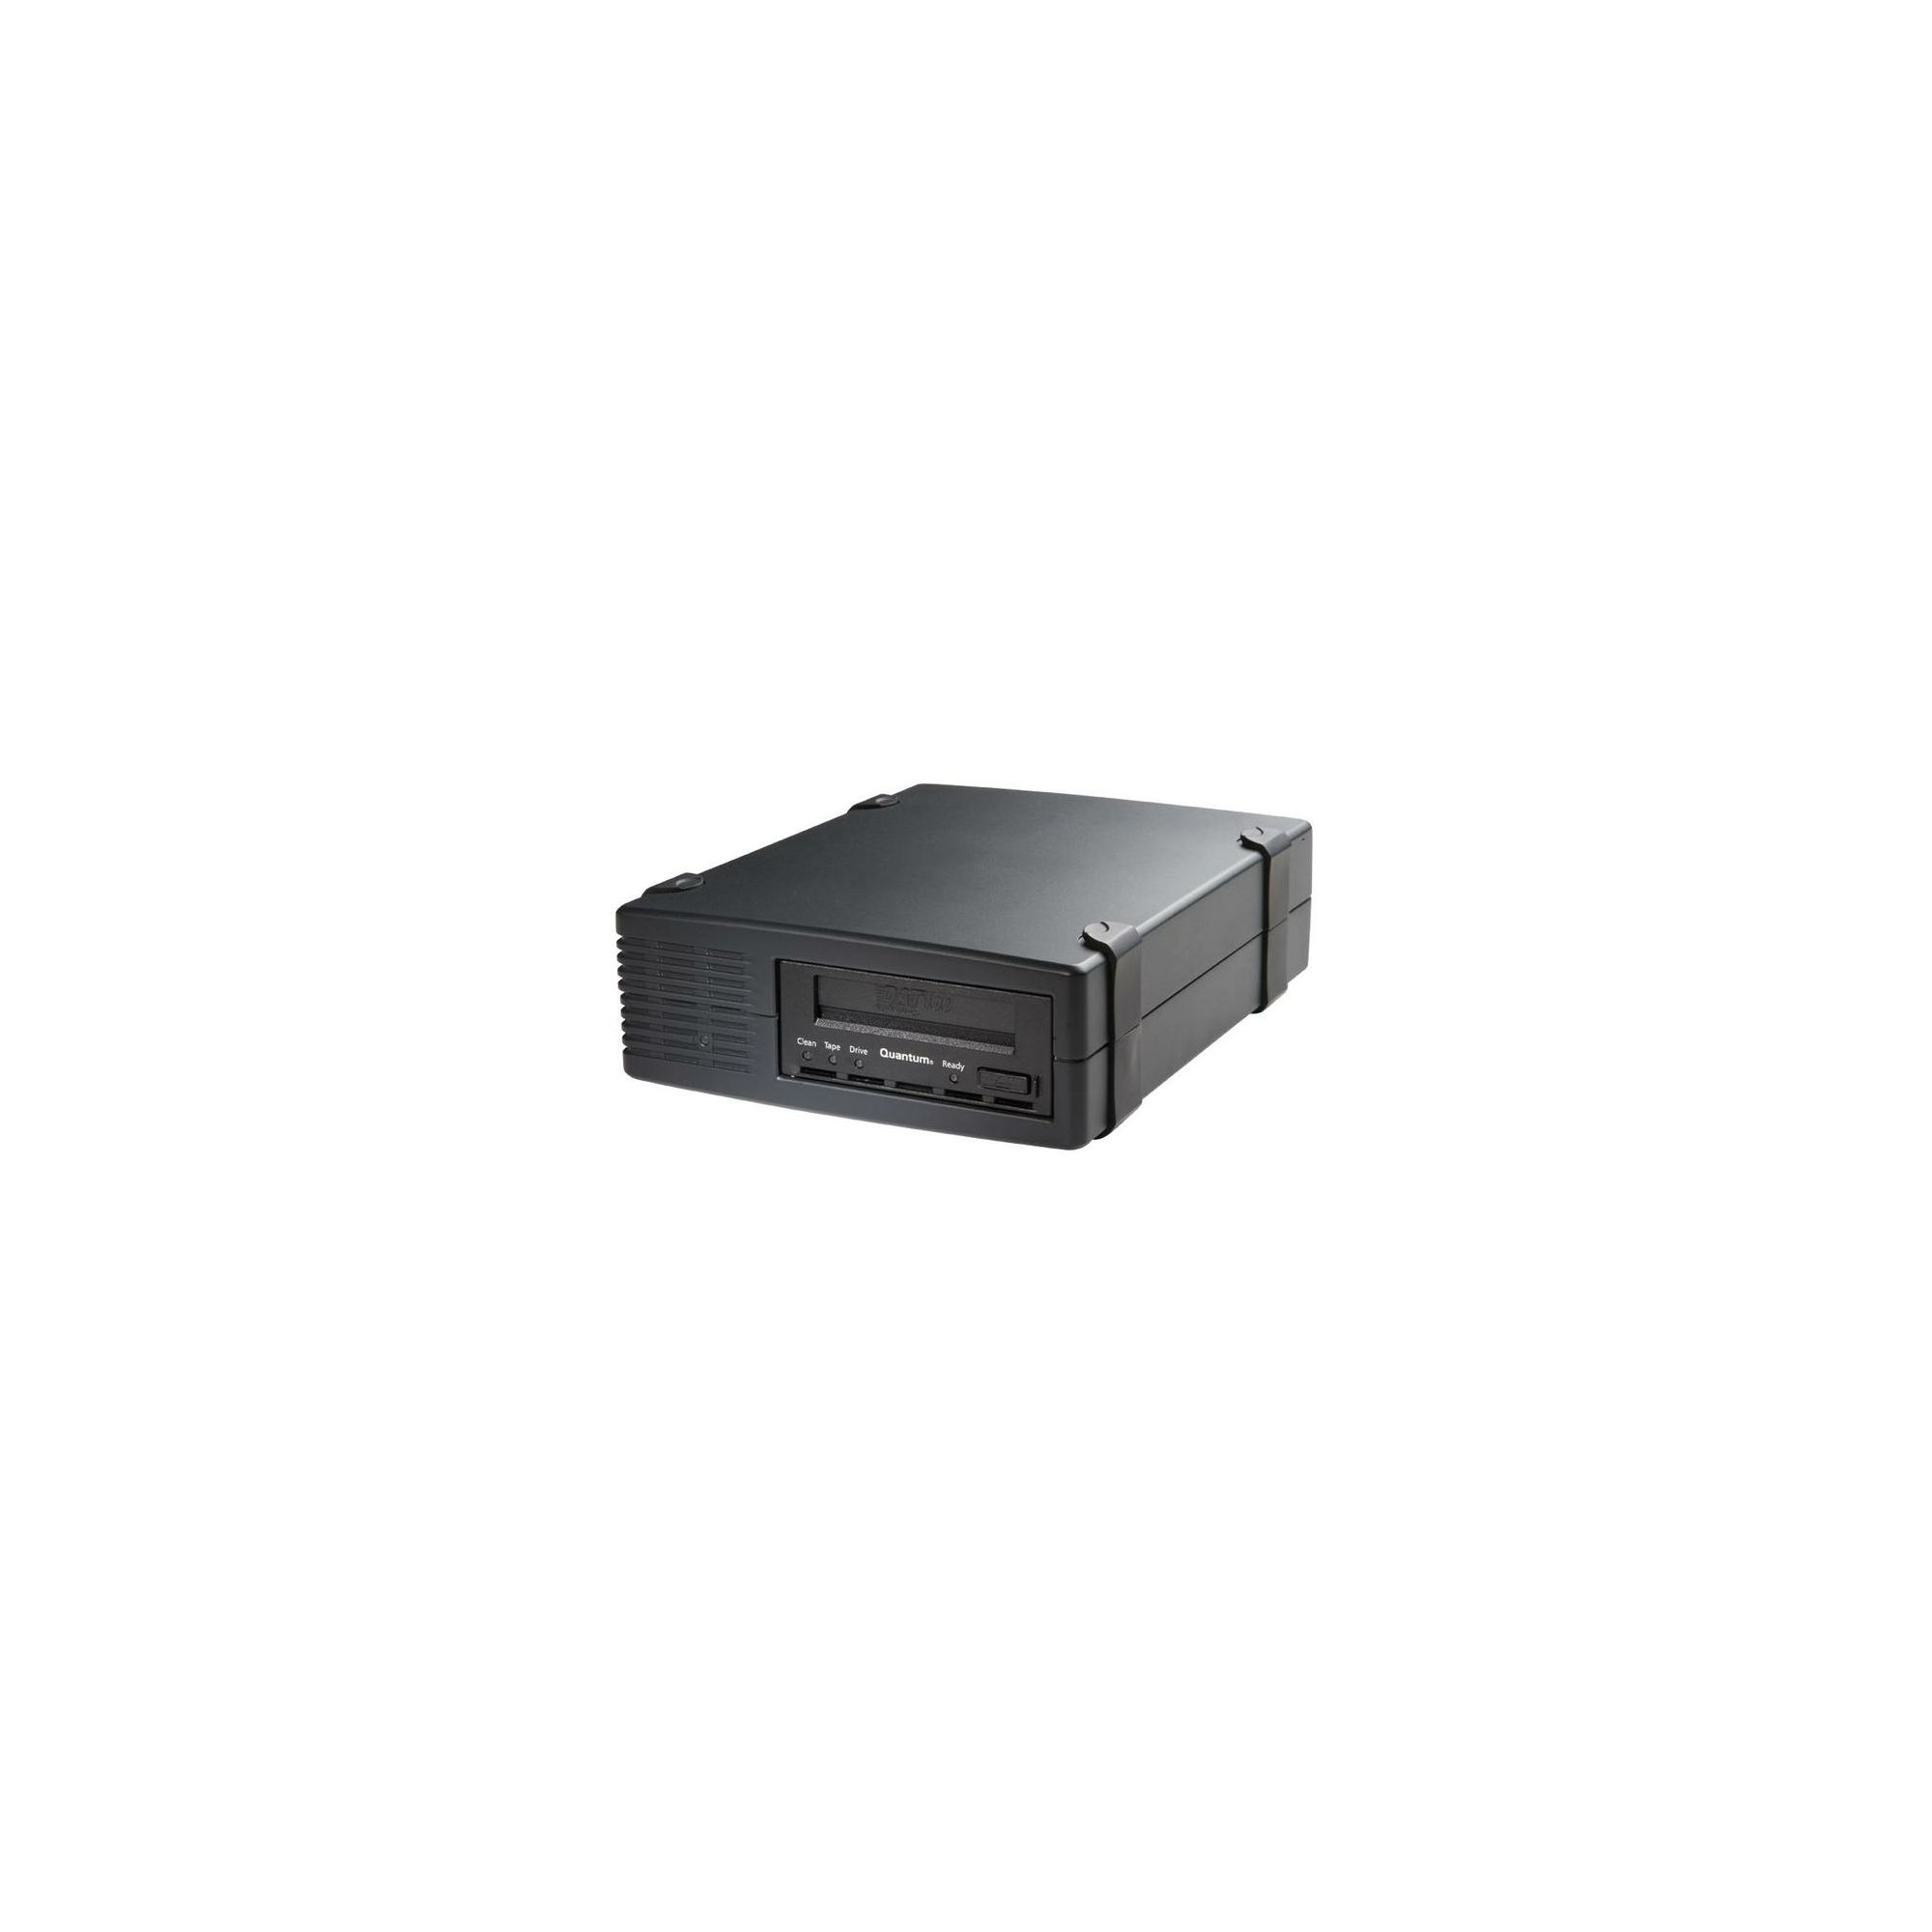 Quantum DAT 160 Tabletop Tape Drive Kit USB 2.0 (Black) at Tesco Direct